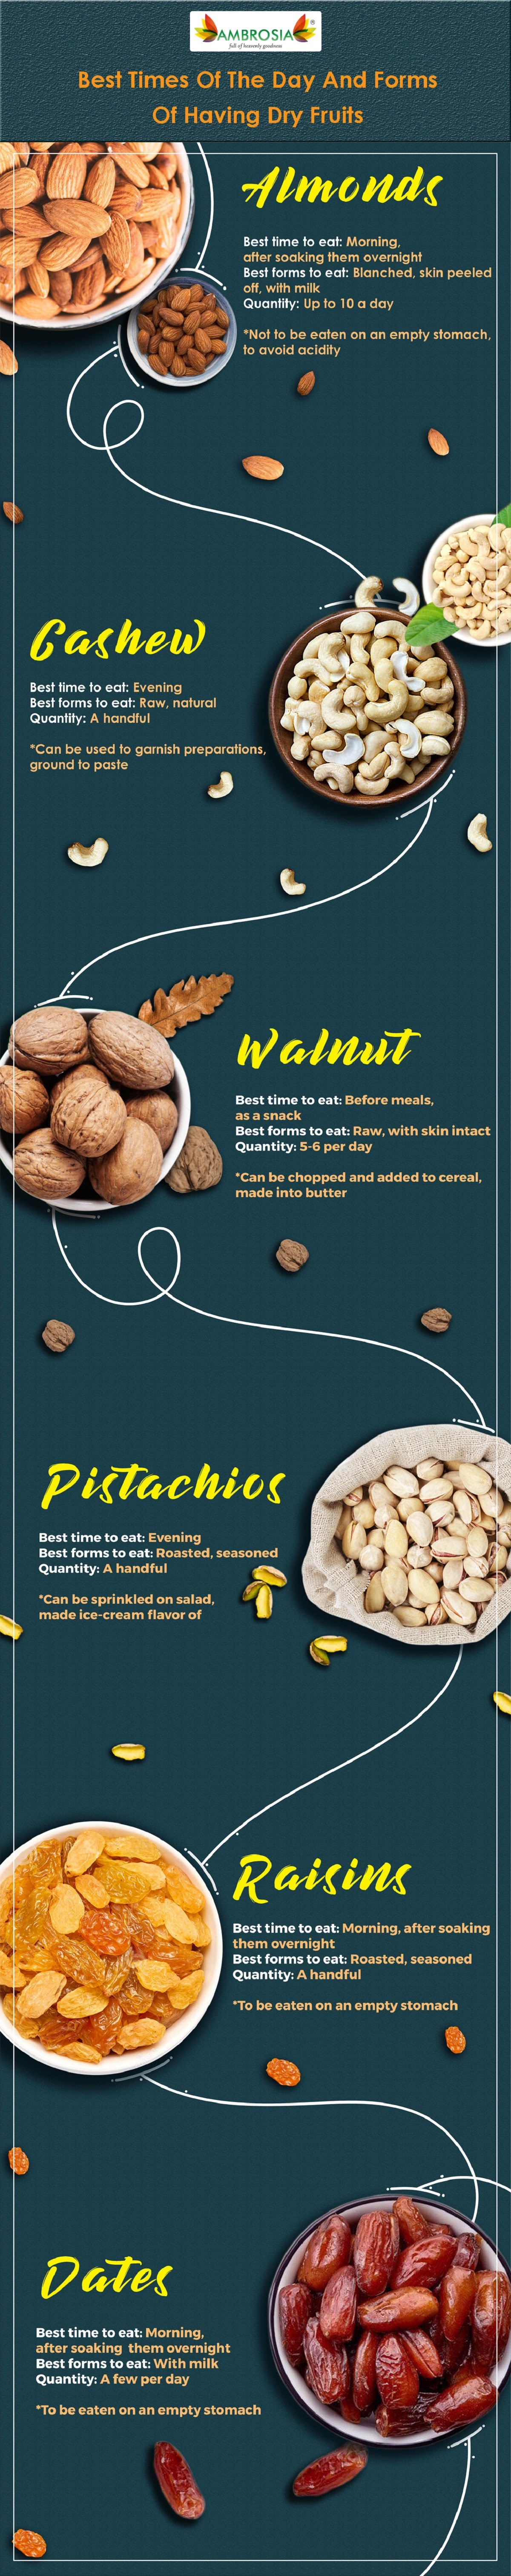 best-times-of-the-day-and-forms-of-having-dry-fruits-infographic